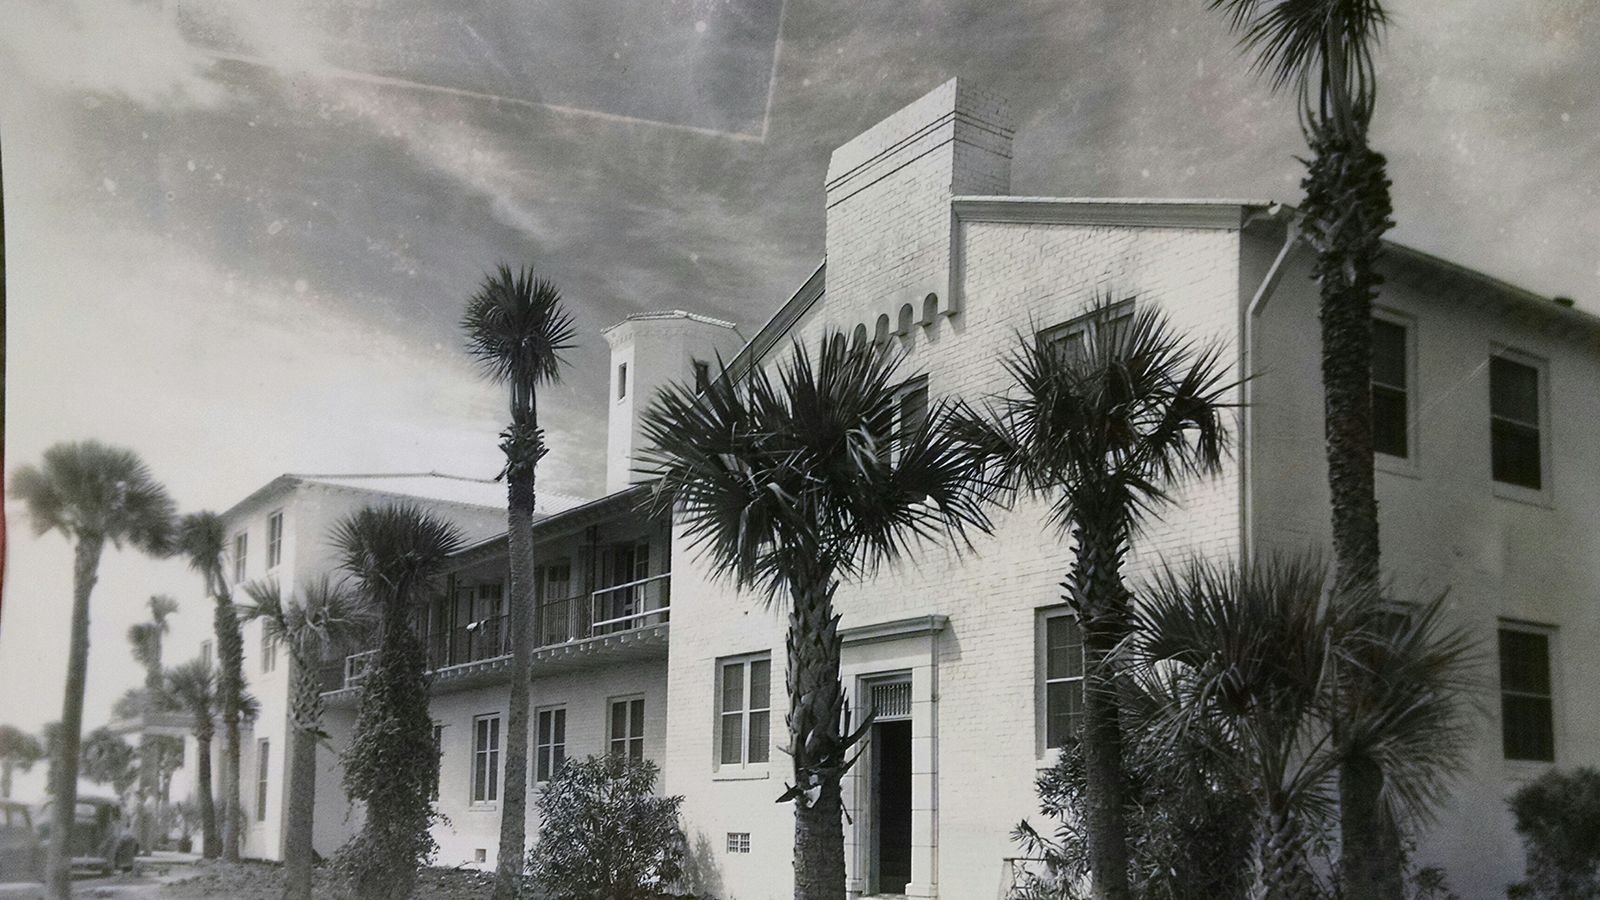 Image of Lobby at The King and Prince Beach and Golf Resort, 1935, Member of Historic Hotels of America, on St. Simons Island, Georgia, Discover